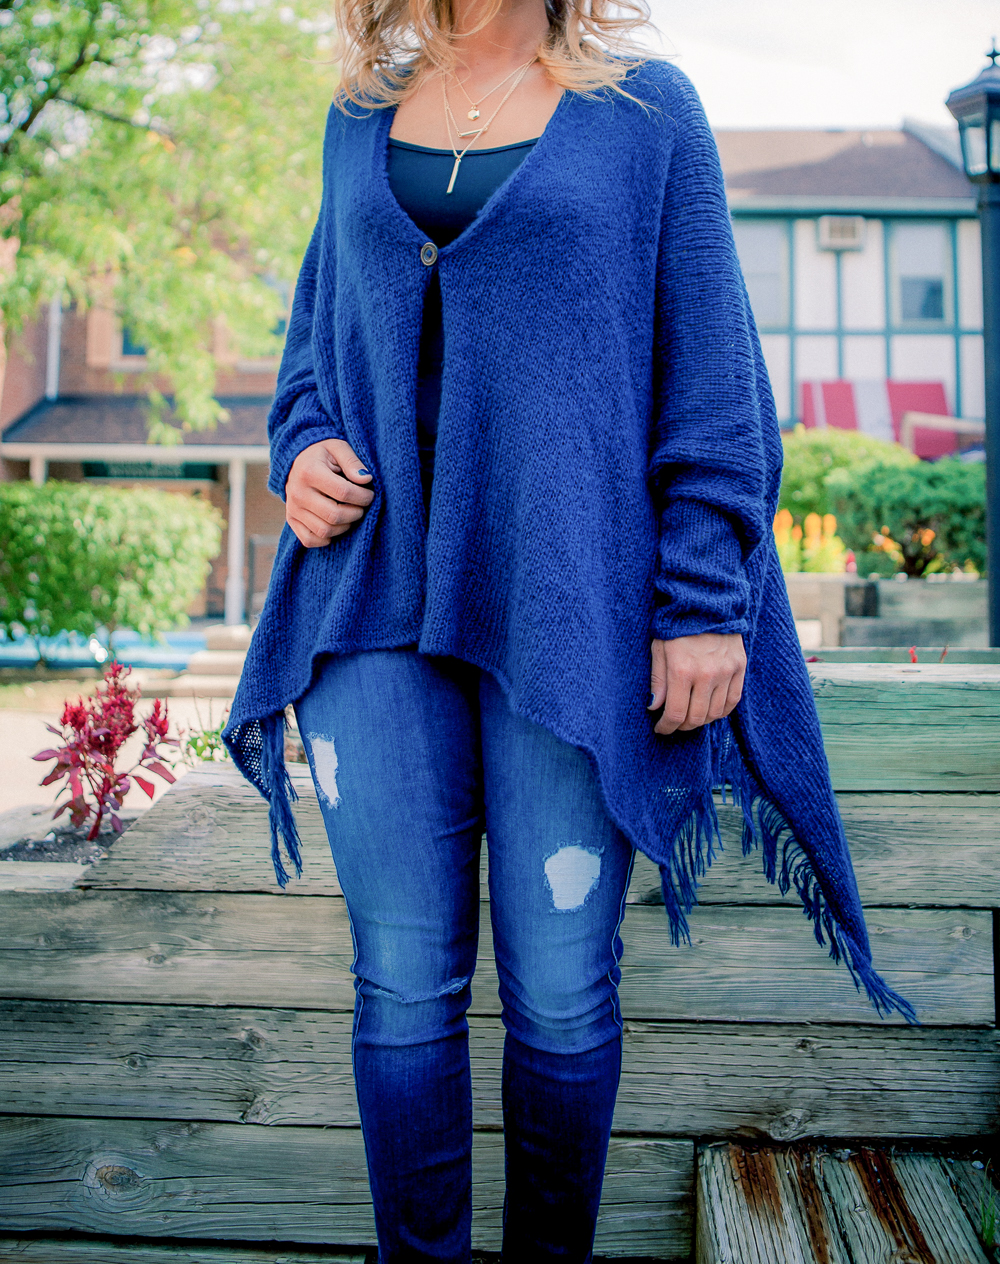 Fall outfit ideas from Toronto fashion blogger, Jackie Goldhar